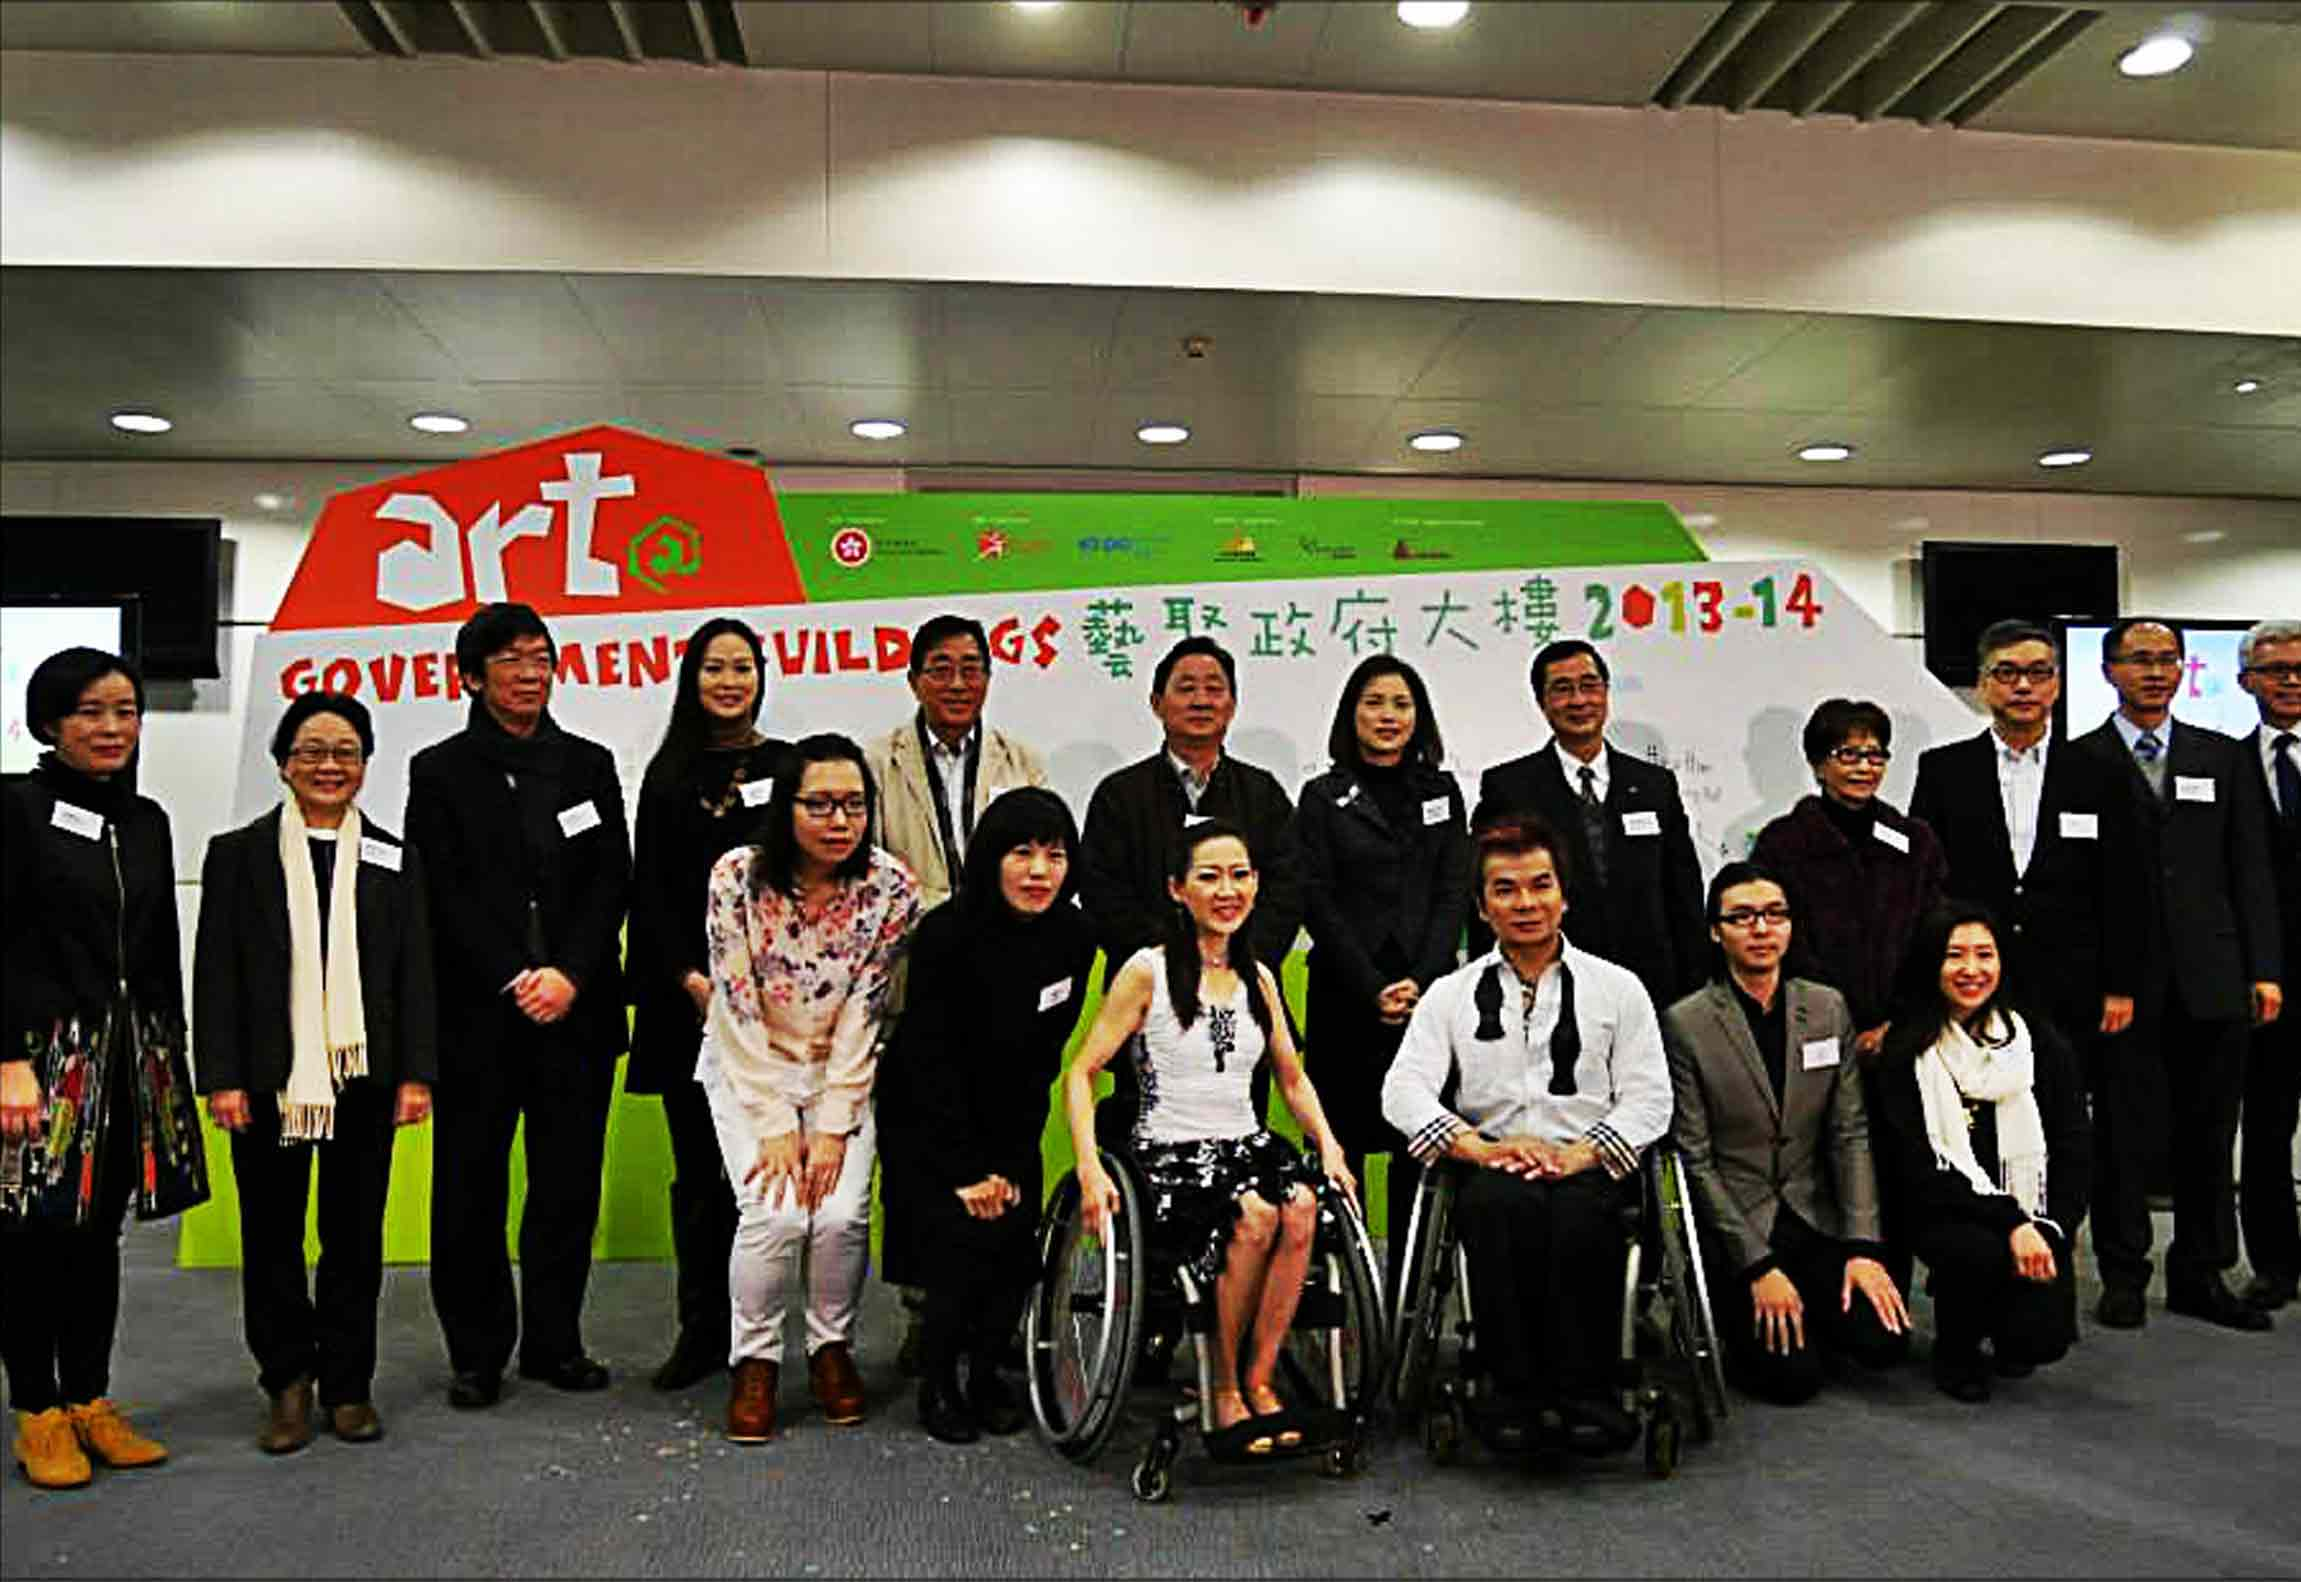 Event & Exhibitions | Art@Government Buildings 2013-14 Opening Ceremony